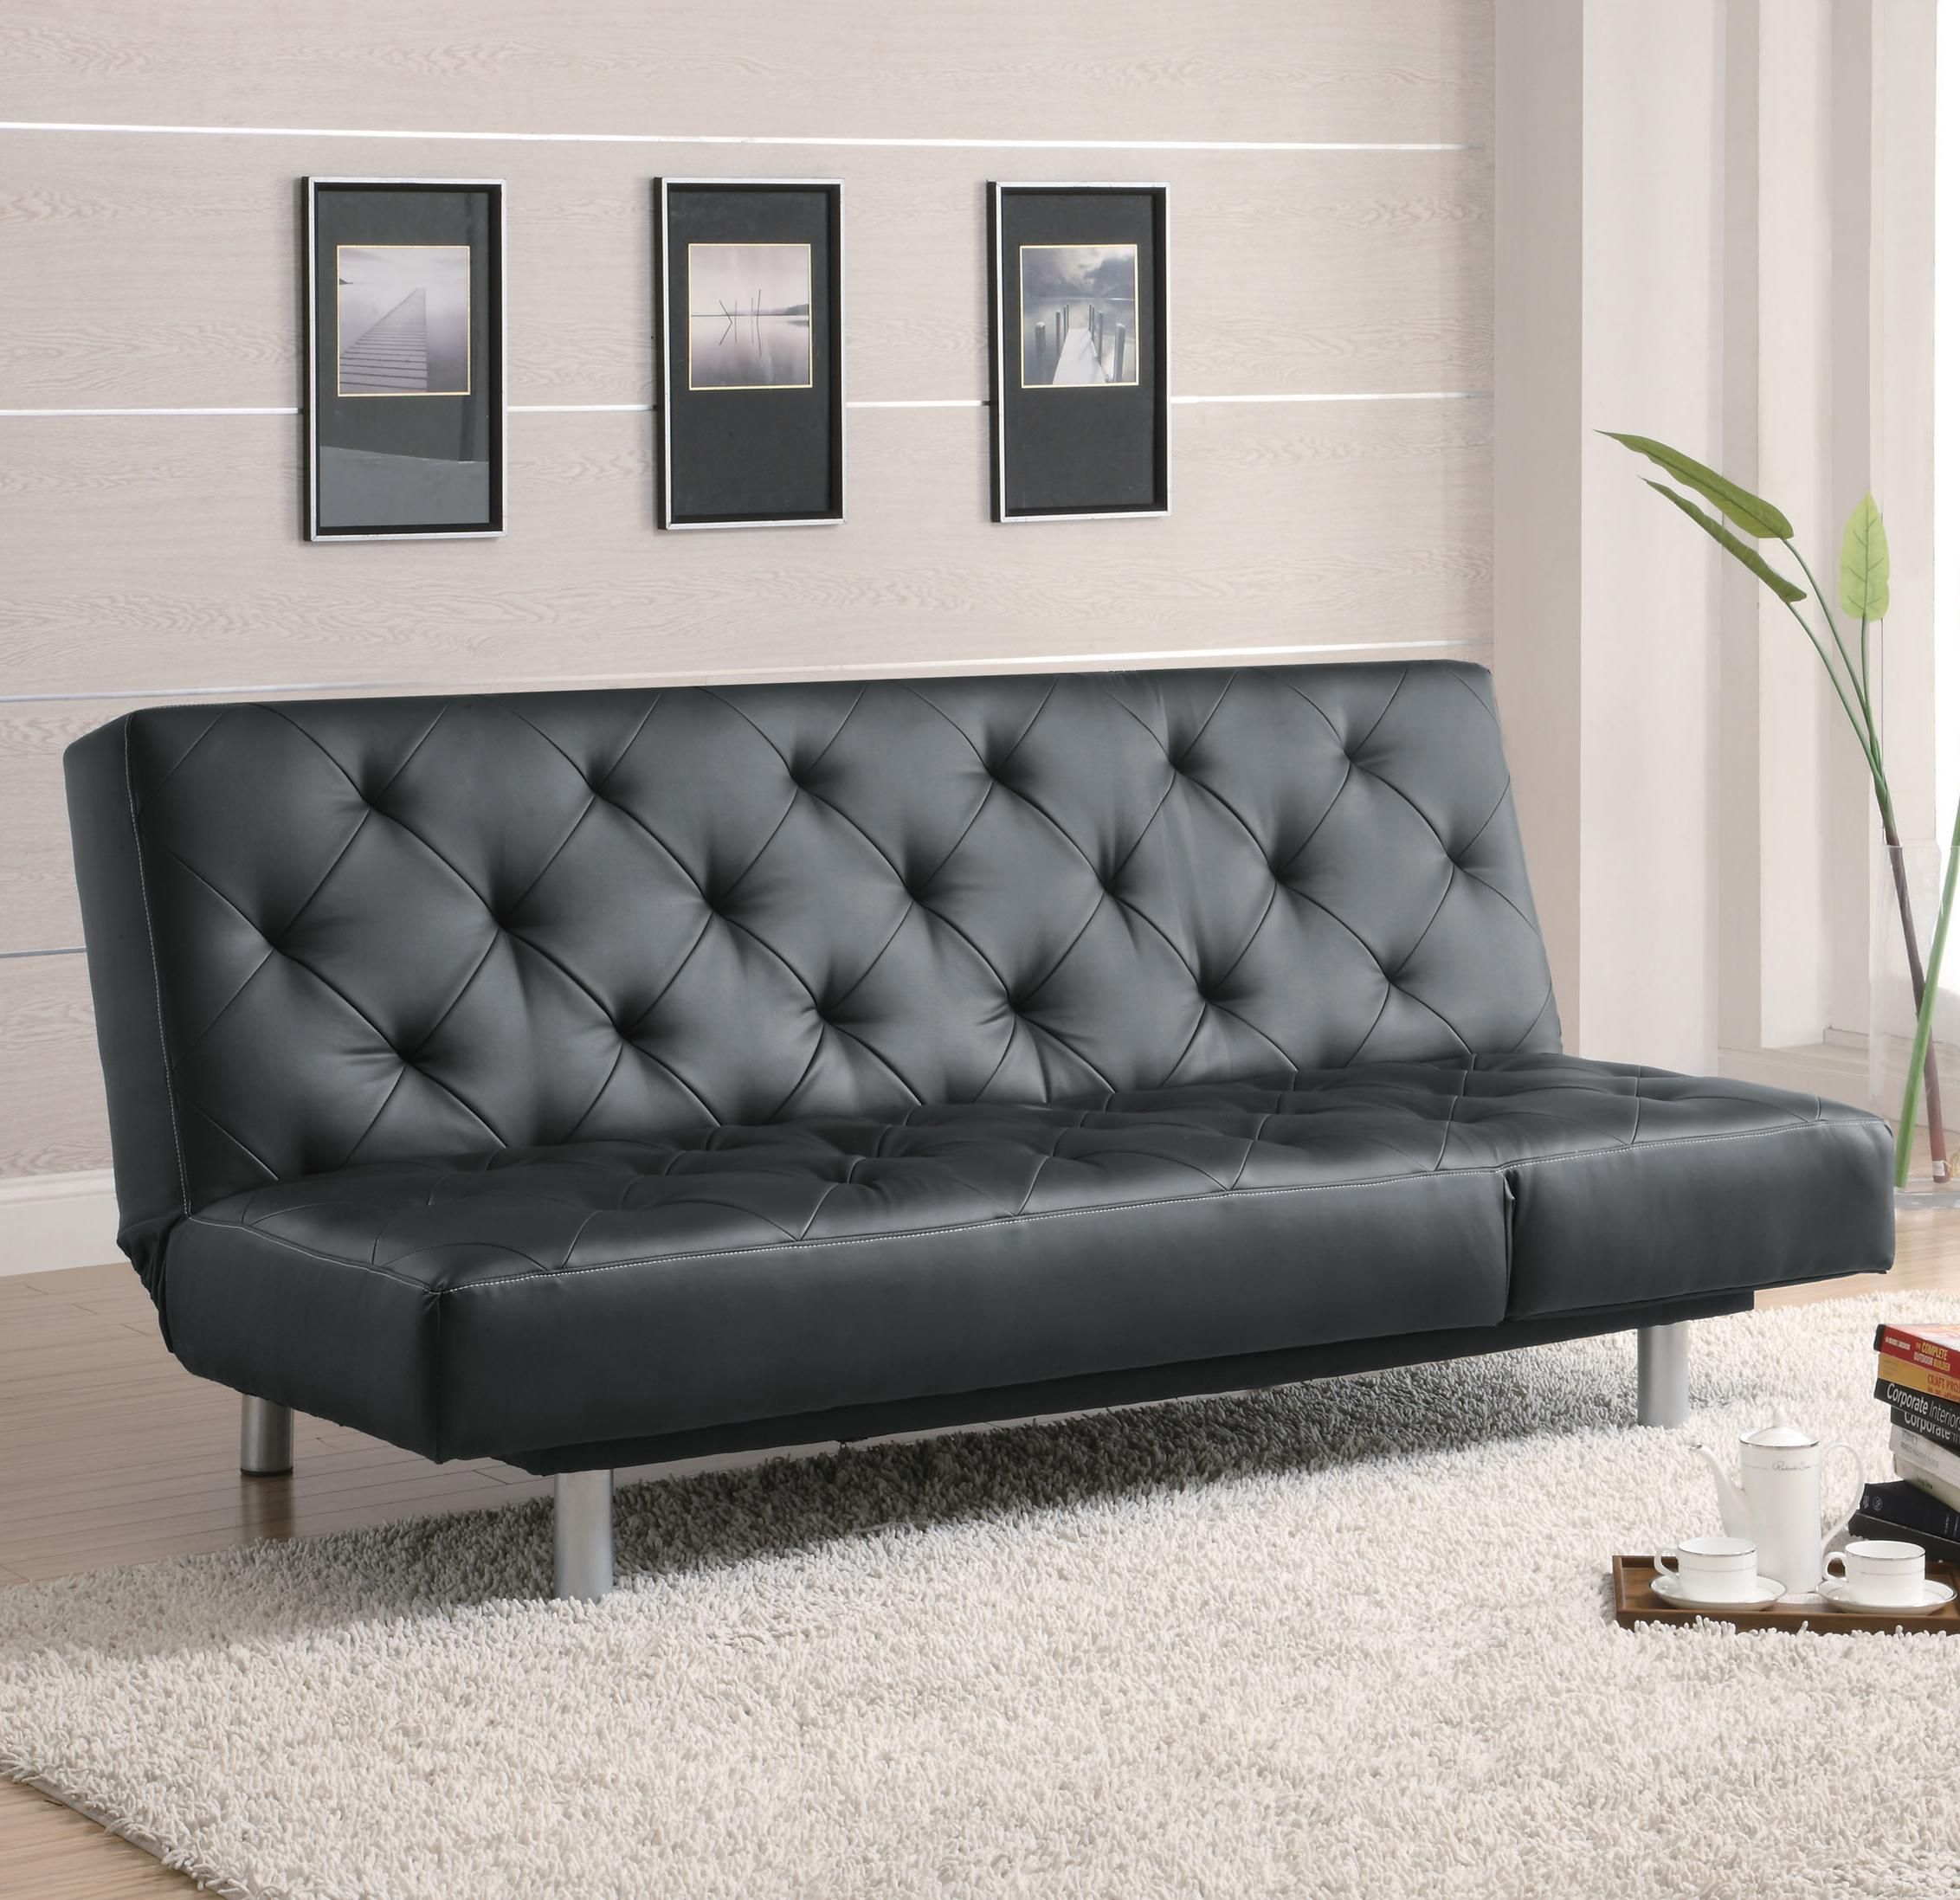 Coaster Sofa Beds And Futons Black Vinyl Tufted Sofa Bed Oversize